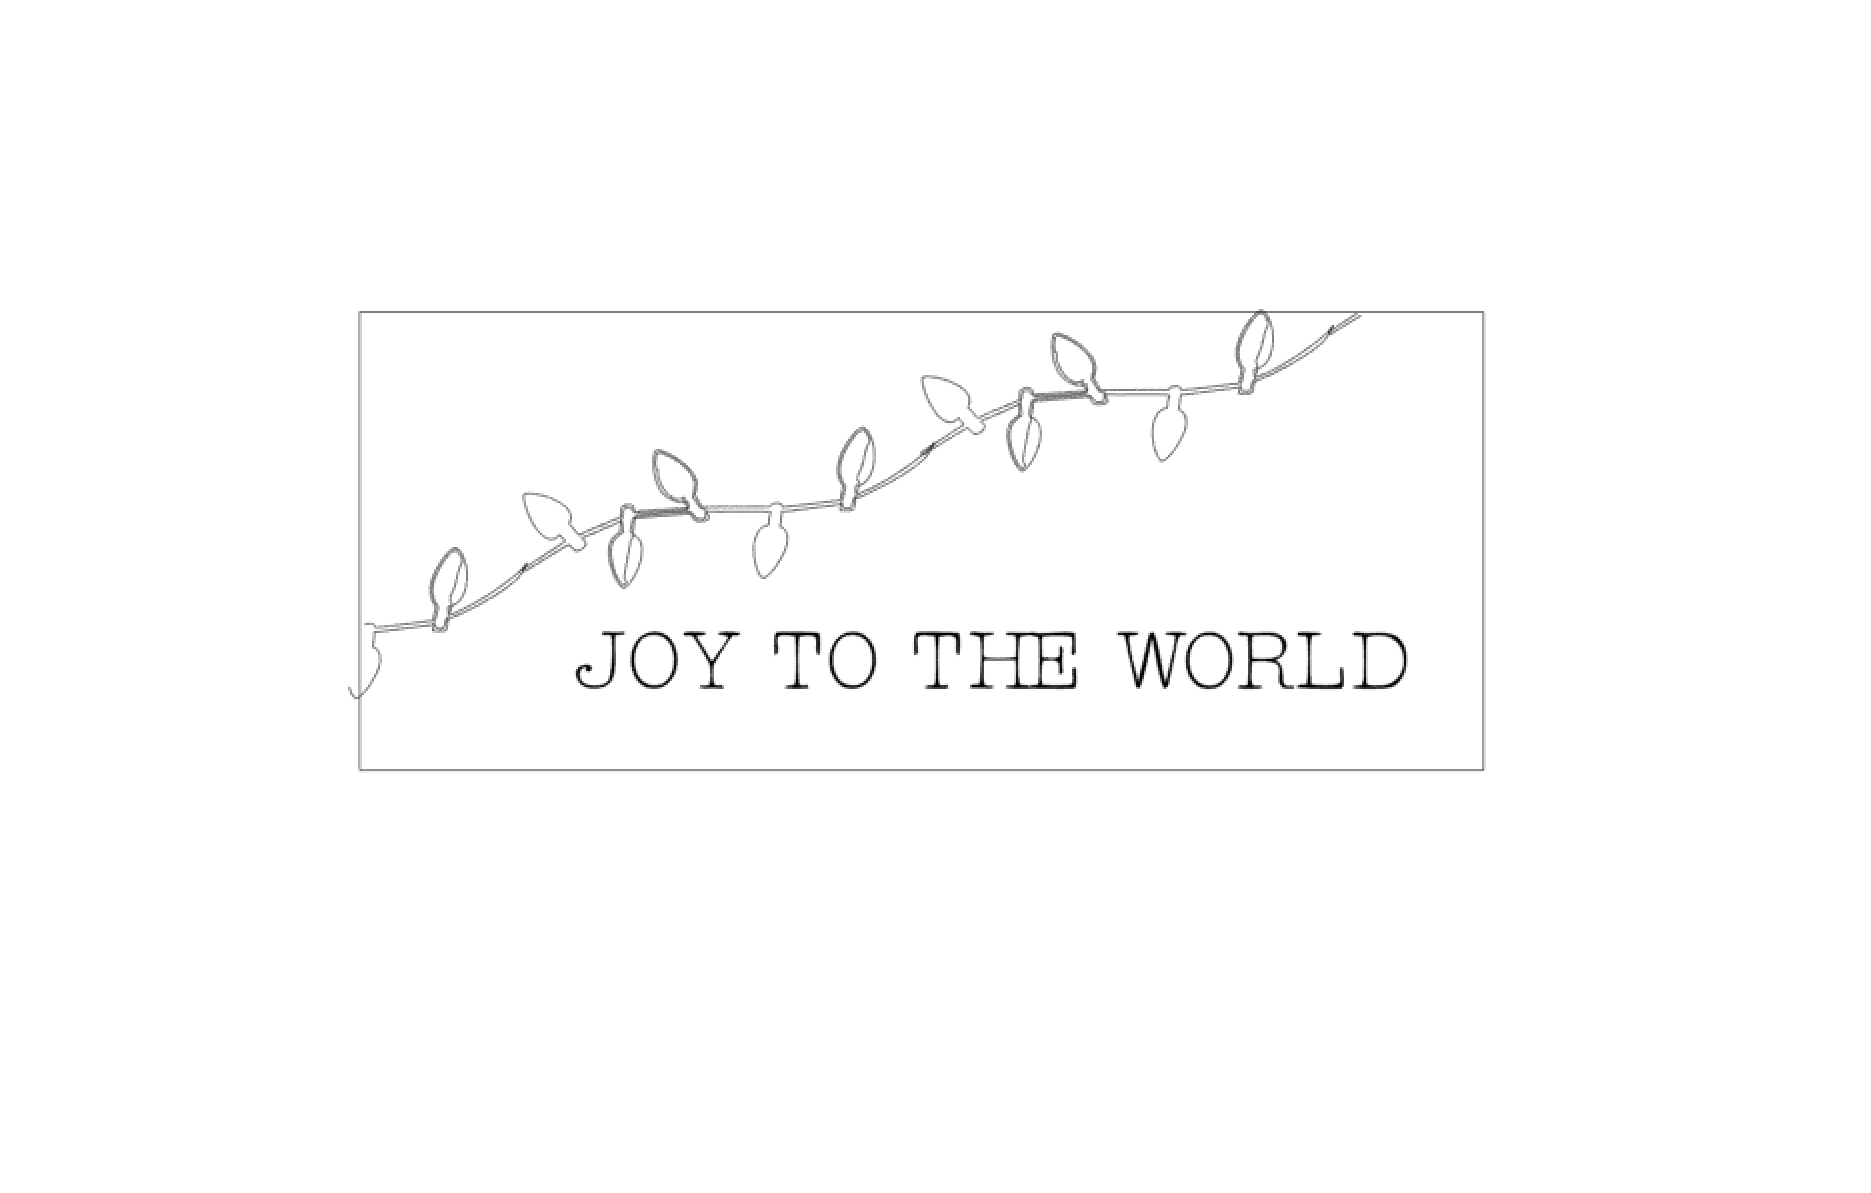 Chriistmas - Joy to the world.PNG